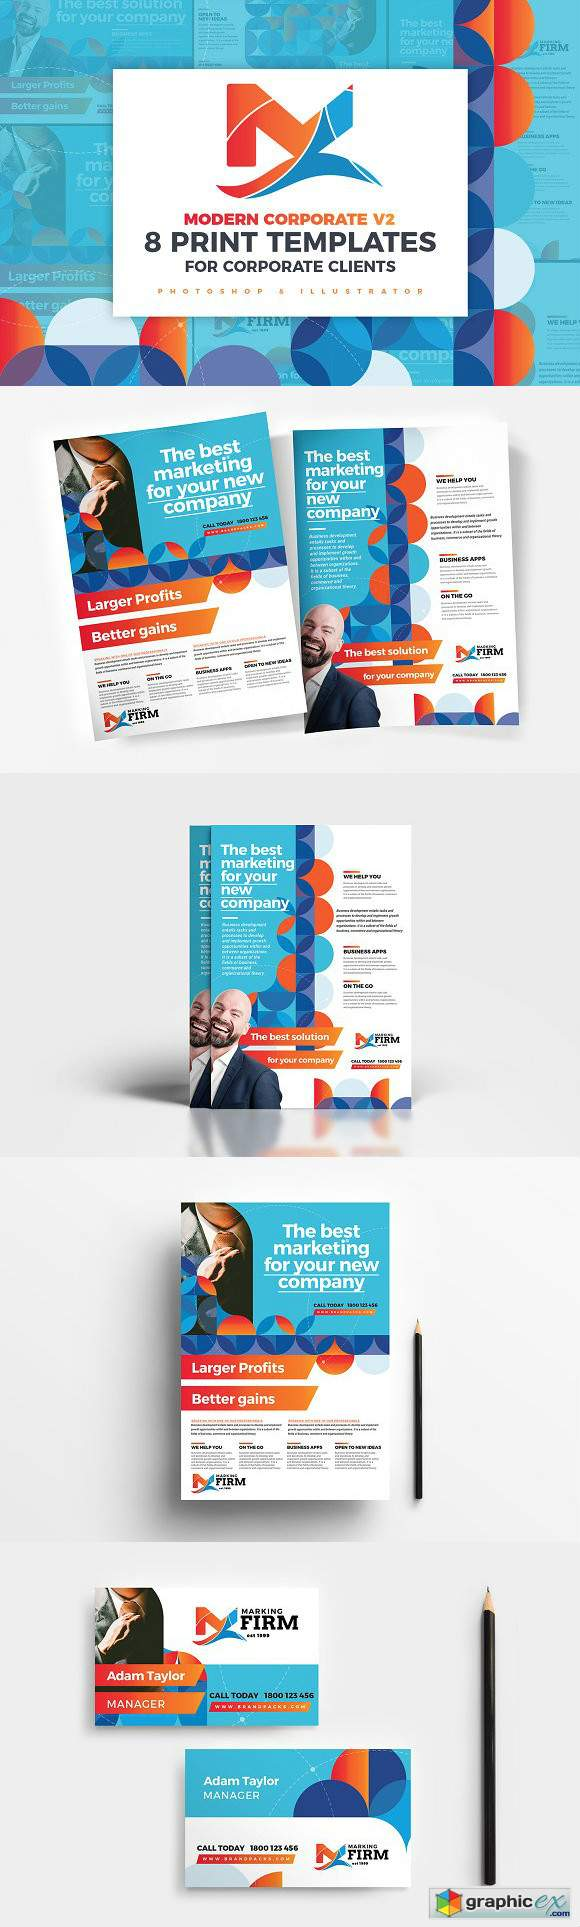 Modern Corporate Templates Pack v2